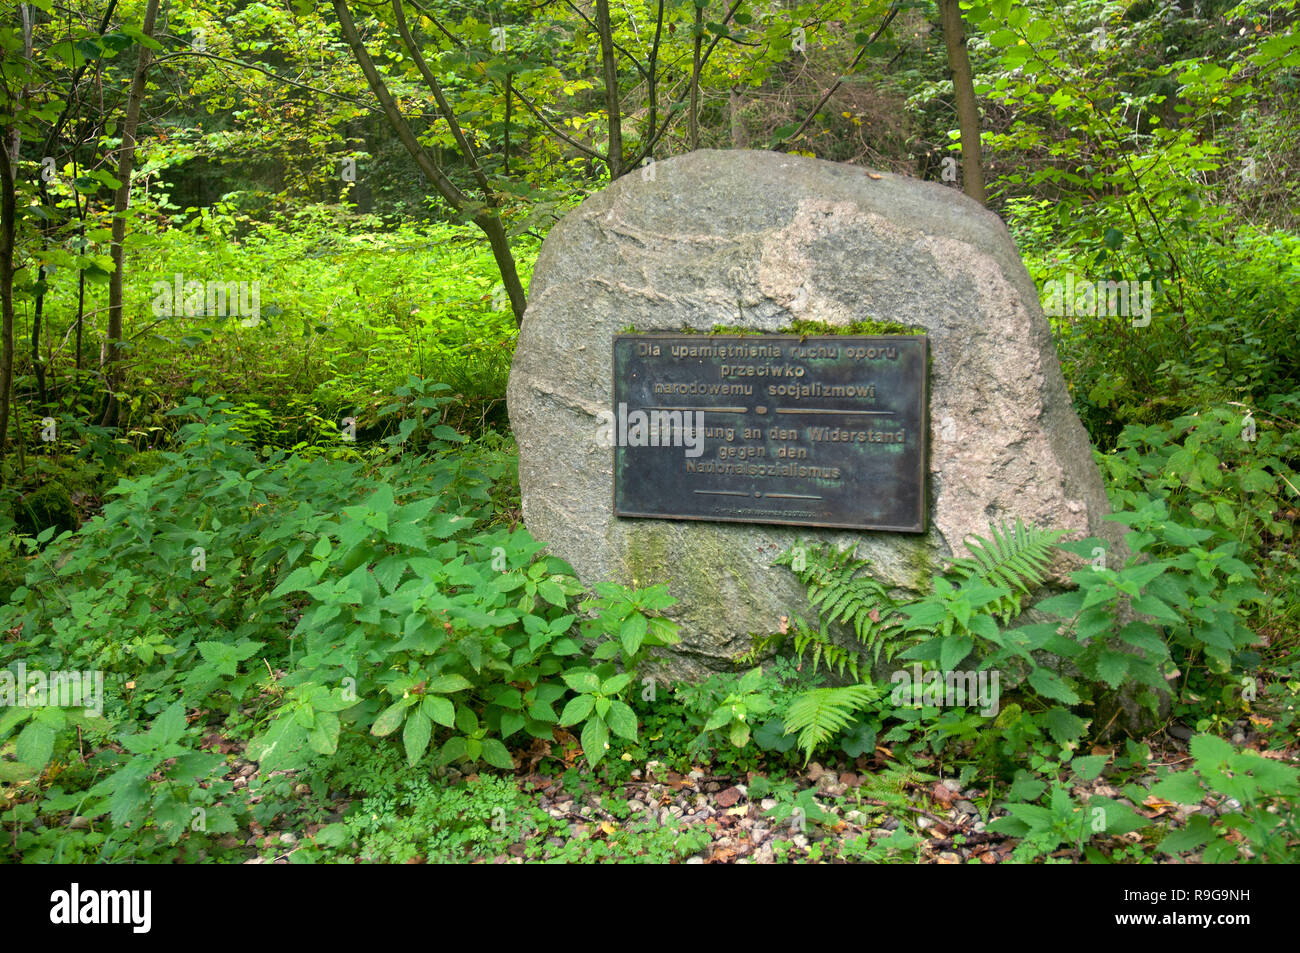 Memorial plaque in memory of resistance against the national socalism, Wolf's lair, Führer's headquarters, Adolf Hitler, Rastenburg, Masuria, Poland Stock Photo